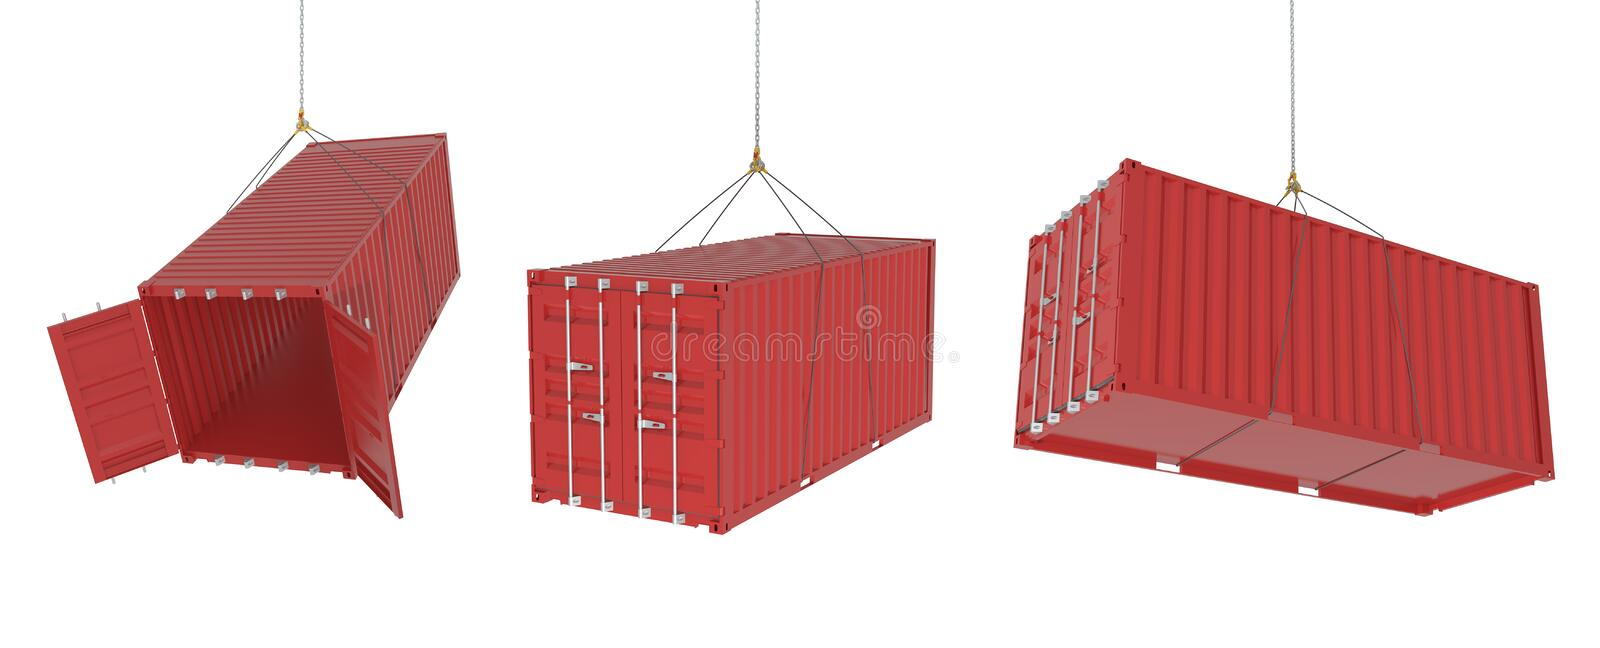 Shipping containers in different positions - red. Set of metal freight shipping containers on the hooks in different possitions, red colour - photorealistic 3d vector illustration